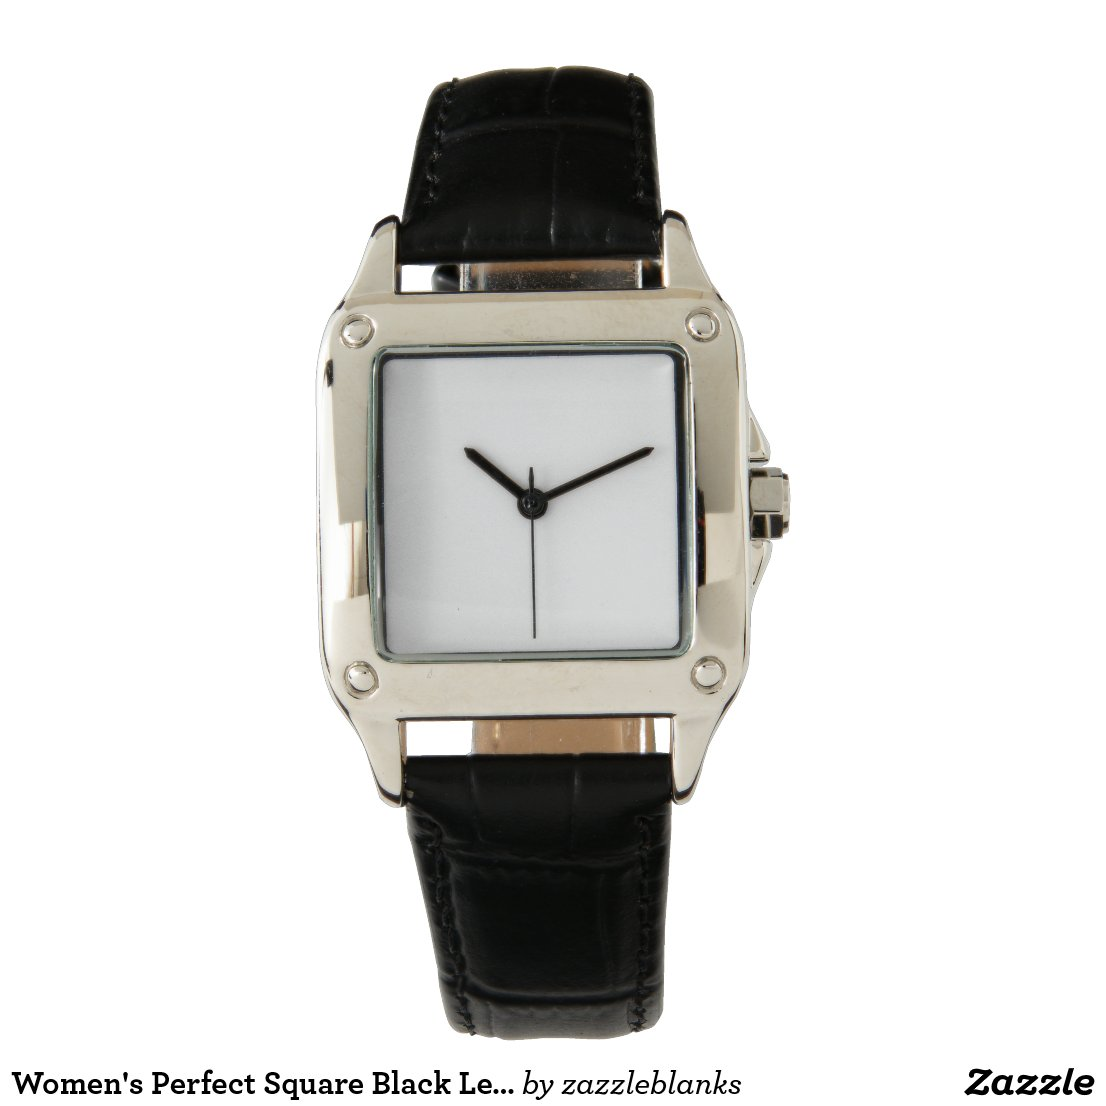 Women's Perfect Square Black Leather Strap Watch